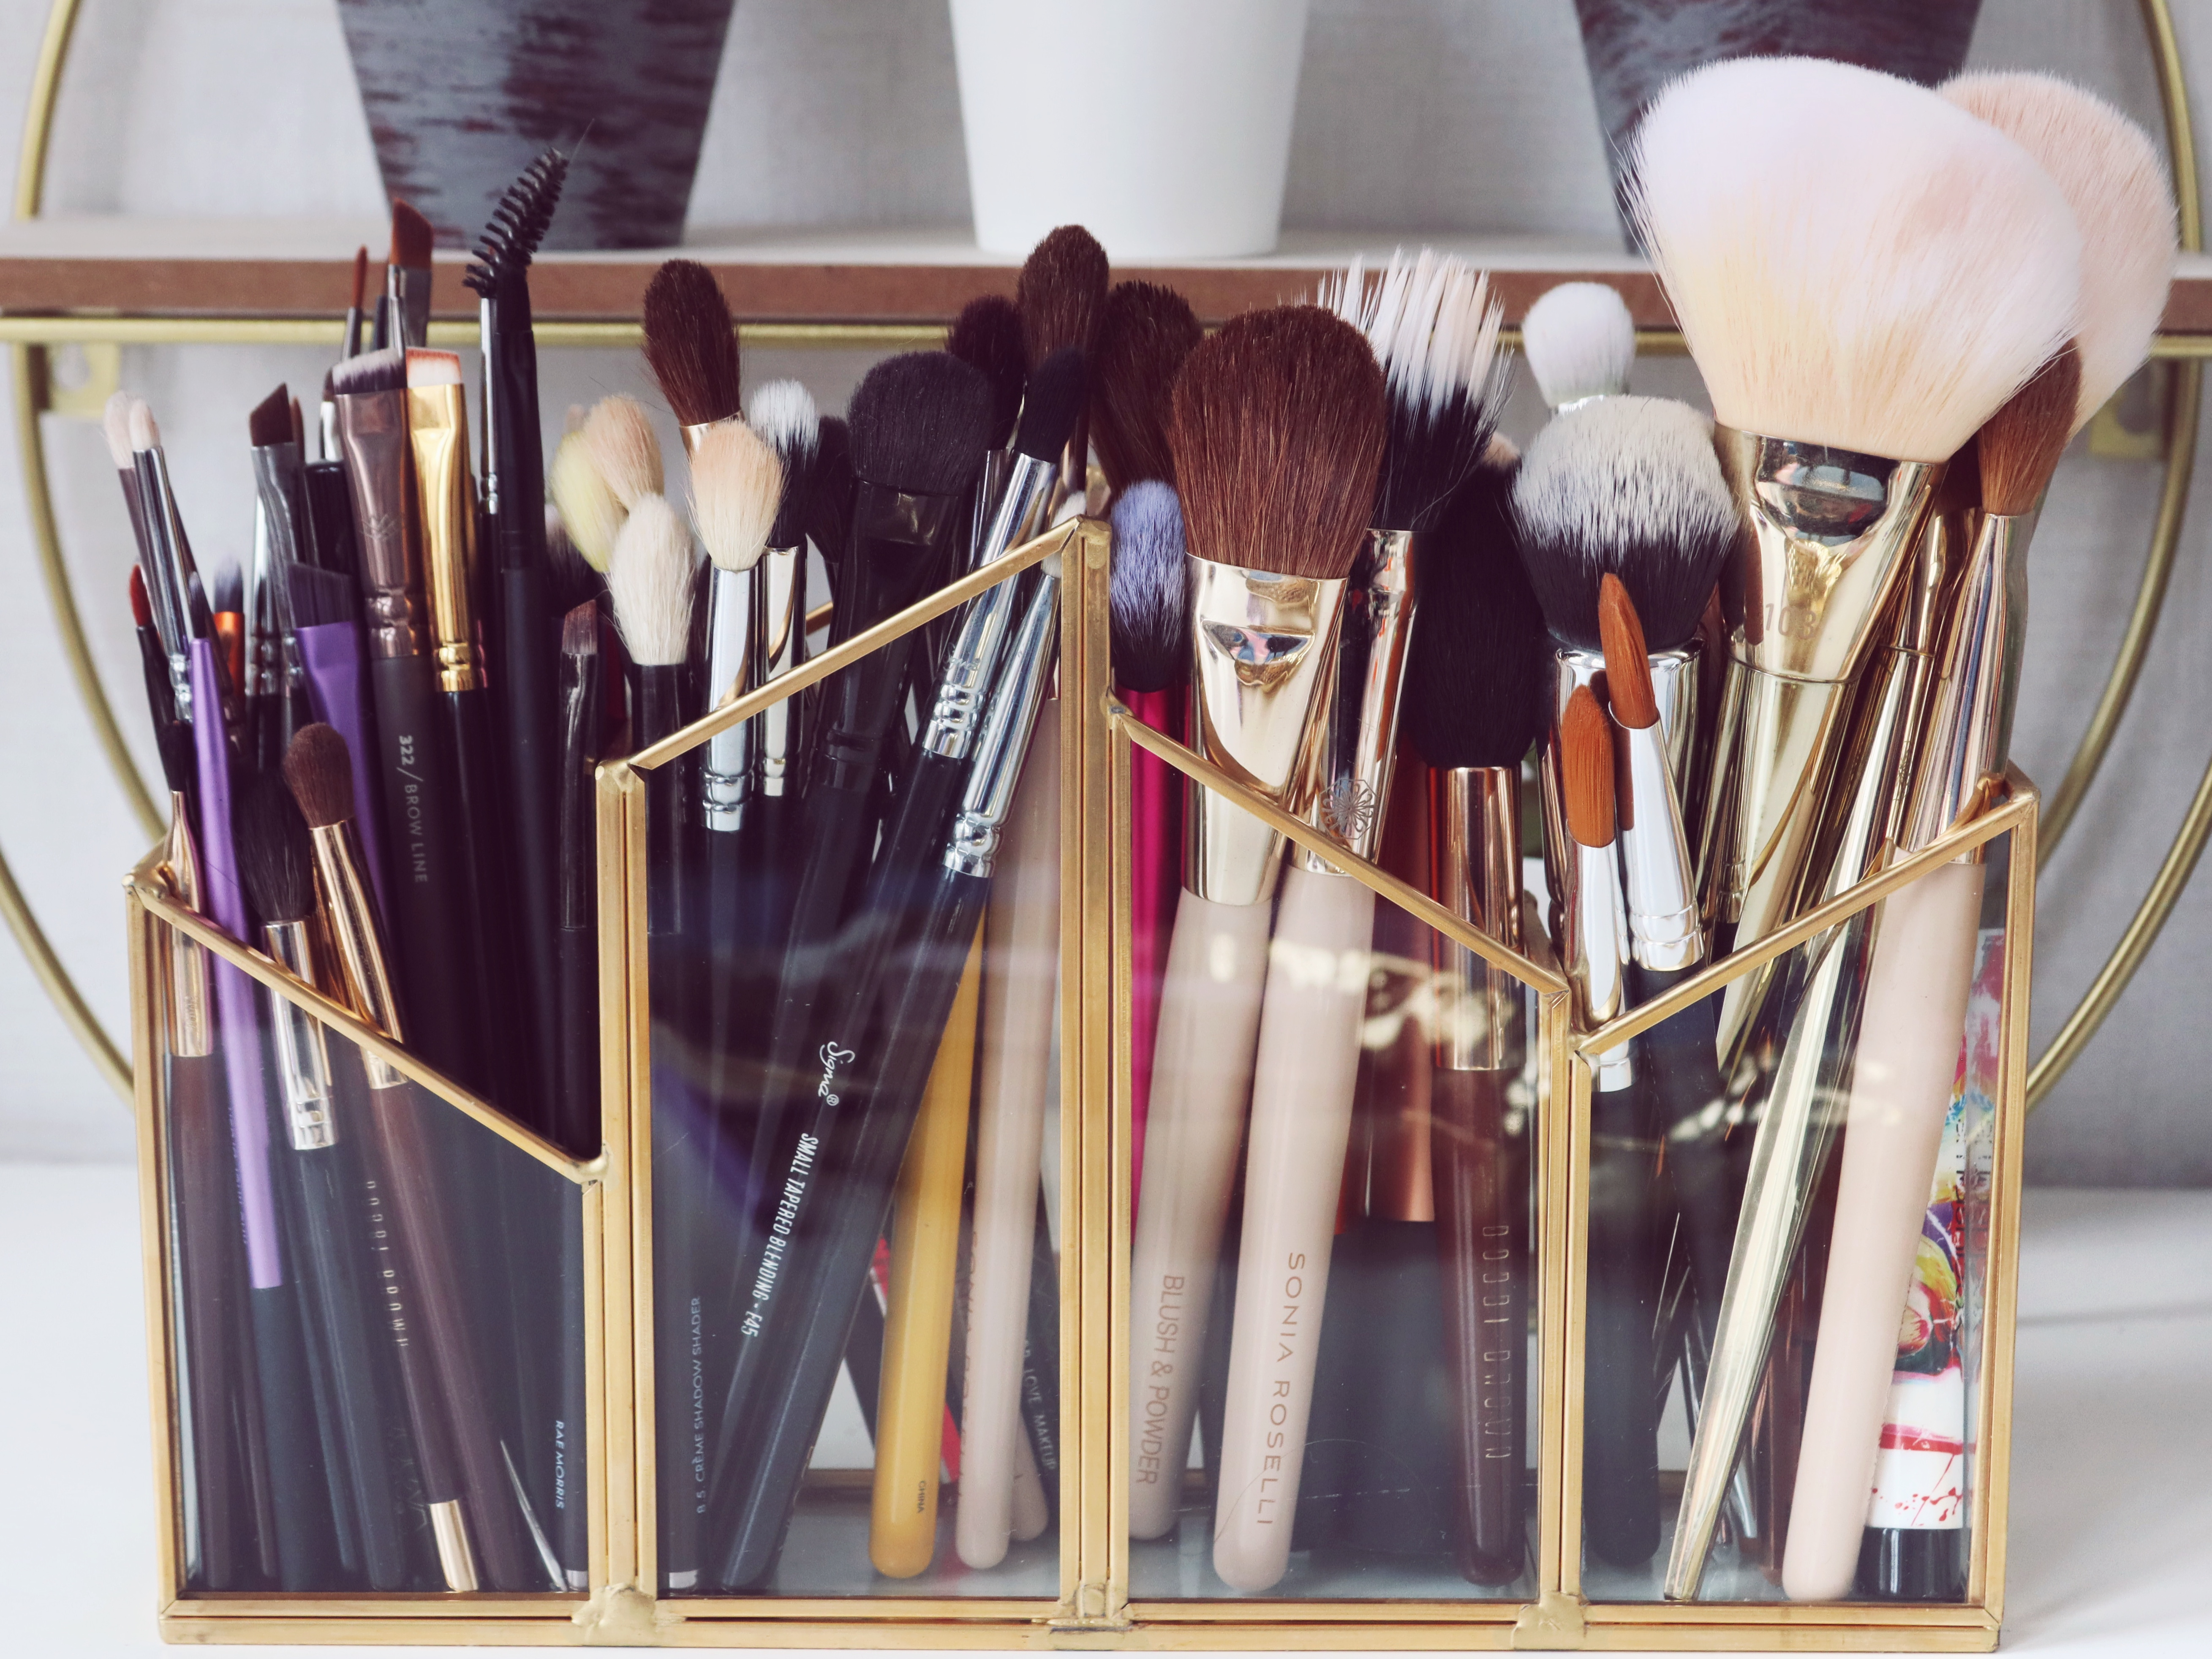 This image contains a glass brush container with gold edging that has sections. It is filled with makeup brushes, each sections filled with different types of brushes from lip brushes, eyeshadow, to face brushes. It sits on a white table top in front of a gold shelving unit and white wall.